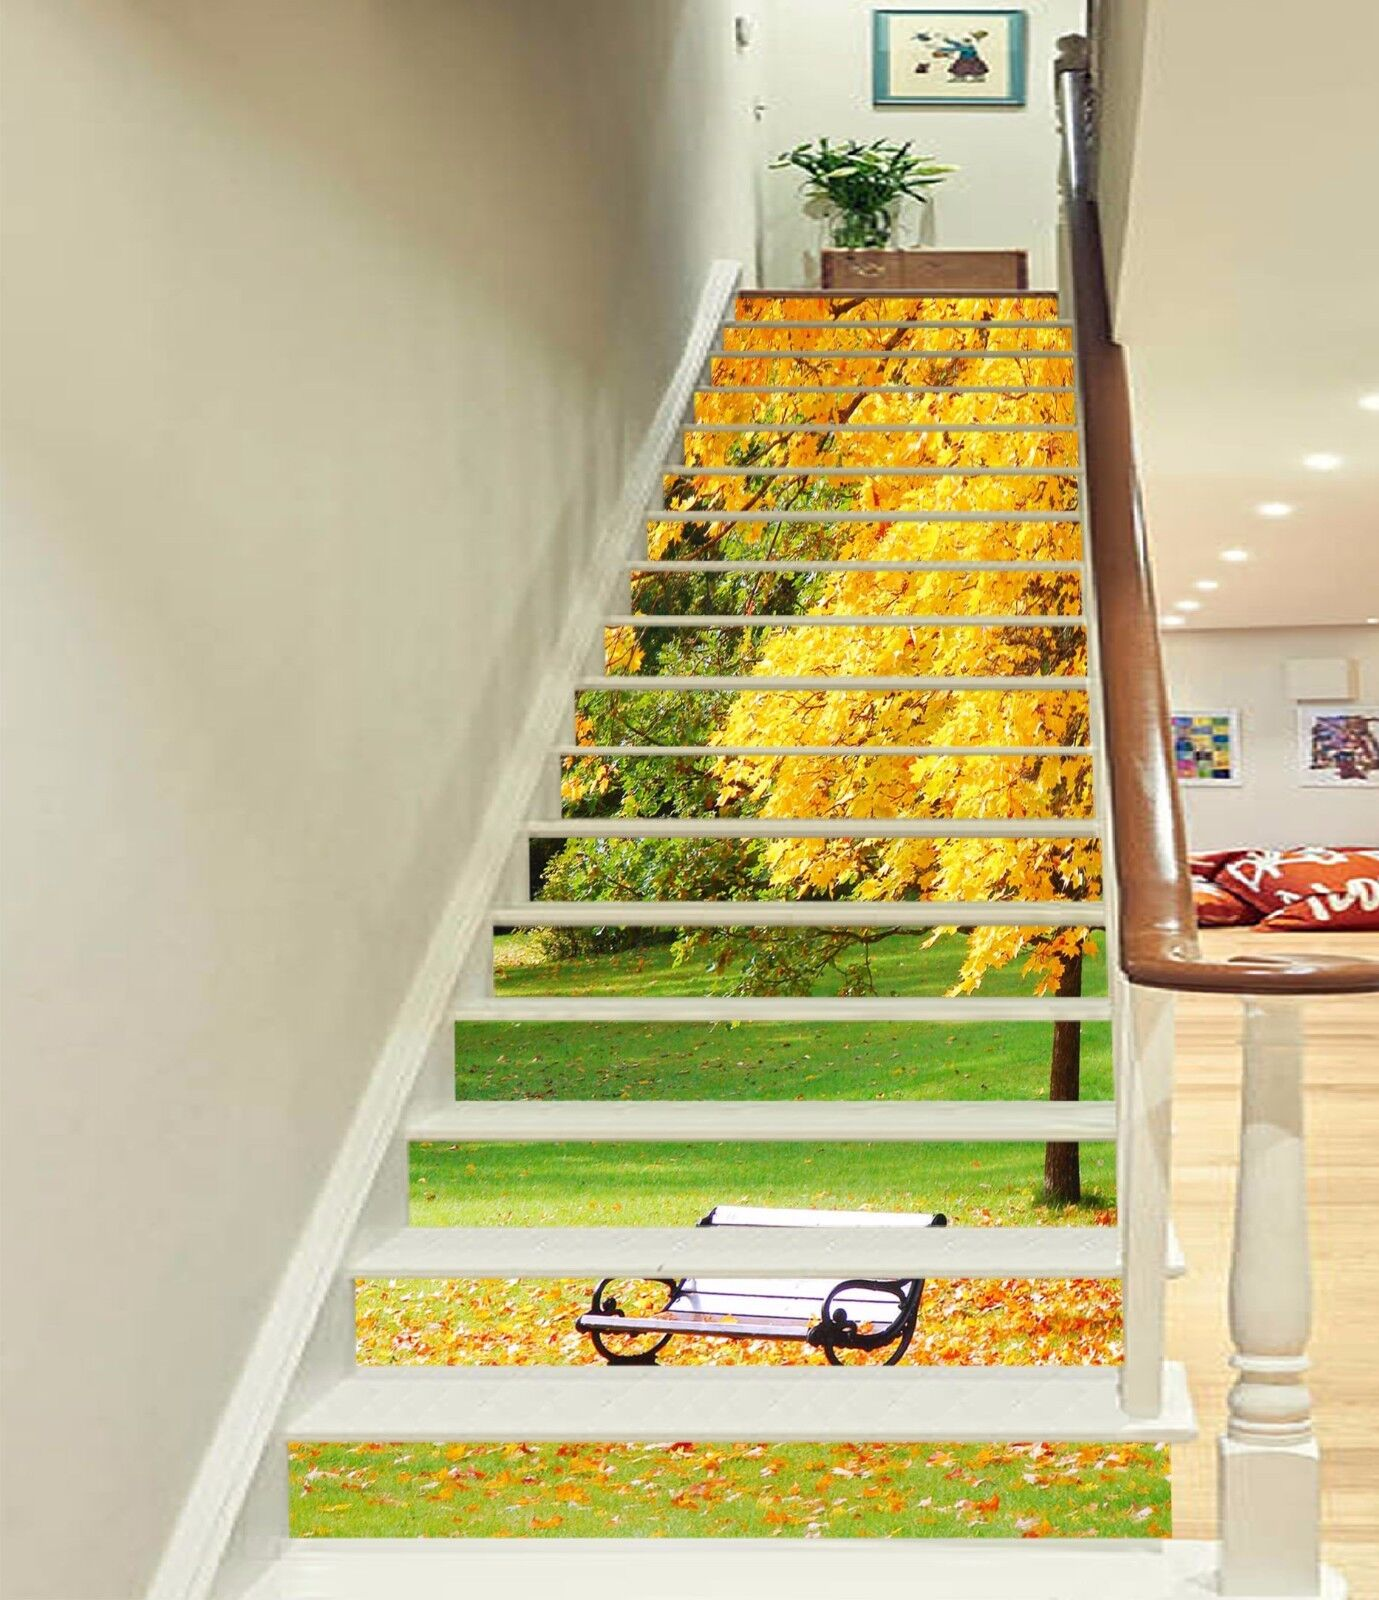 3D Fall Landscape 83Stair Risers Decoration Photo Mural Vinyl Decal Wallpaper AU